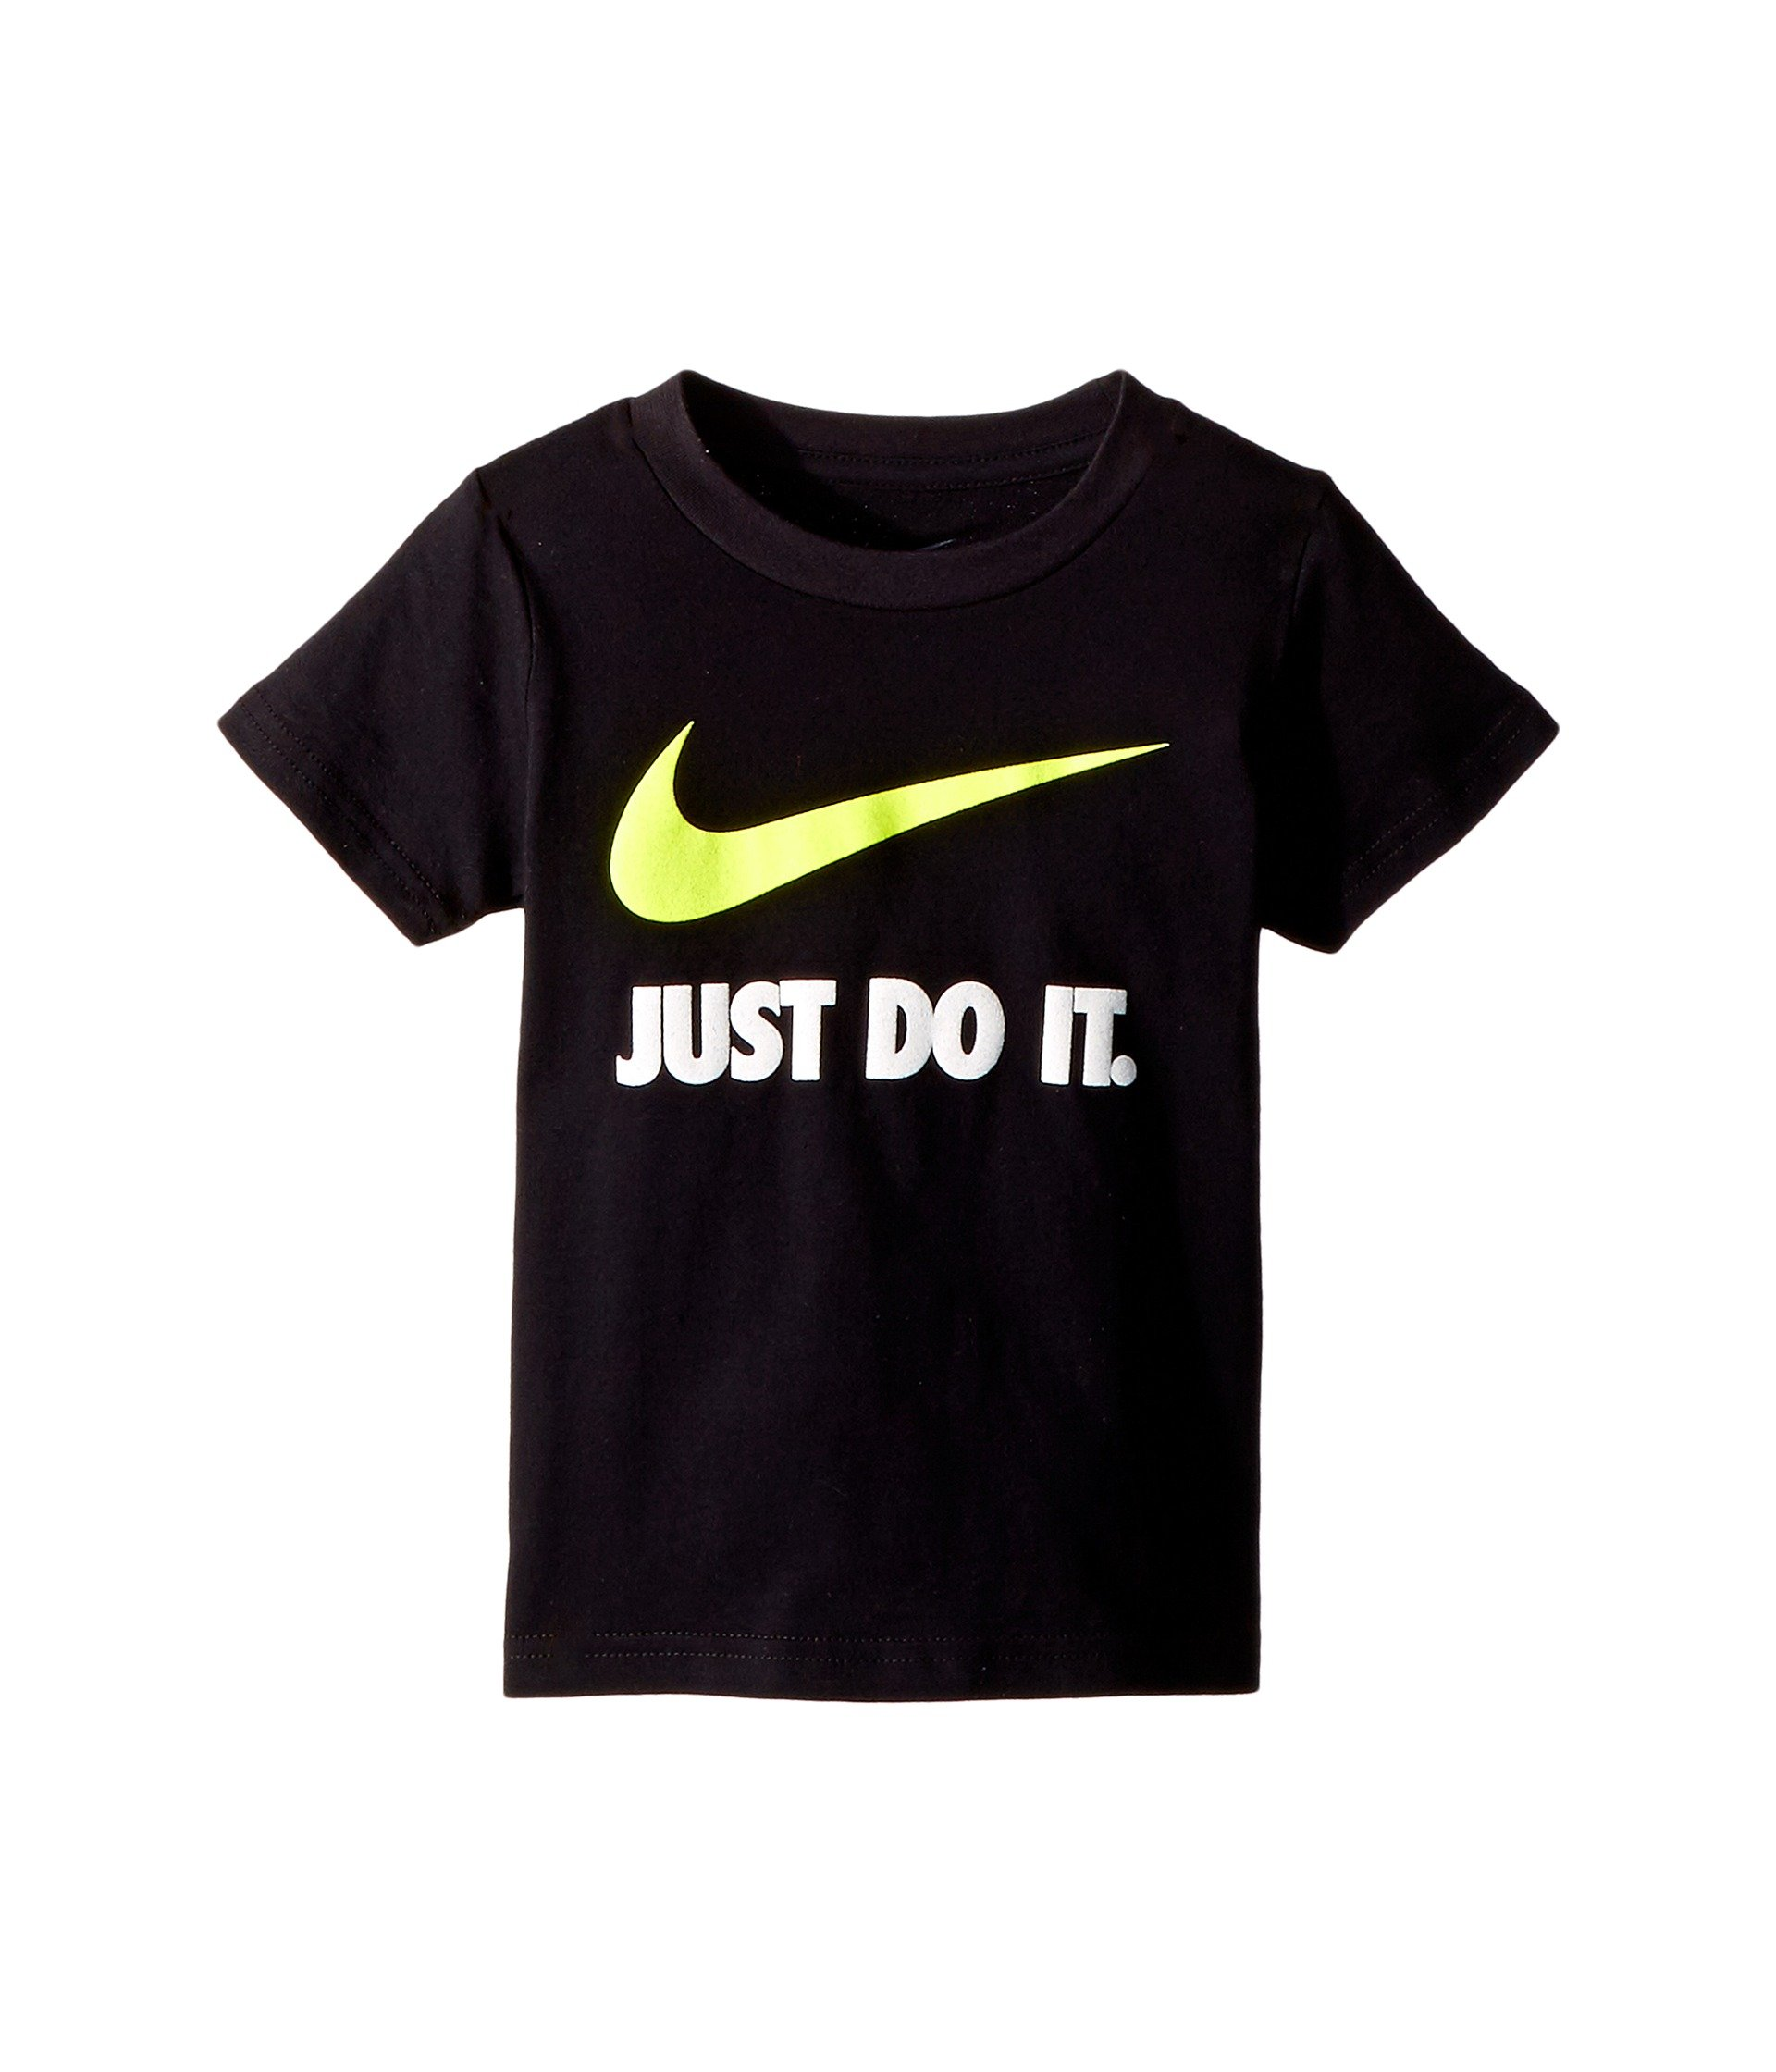 Nike Boys Toddler T-Shirt (4T, Black/Volt (769461))